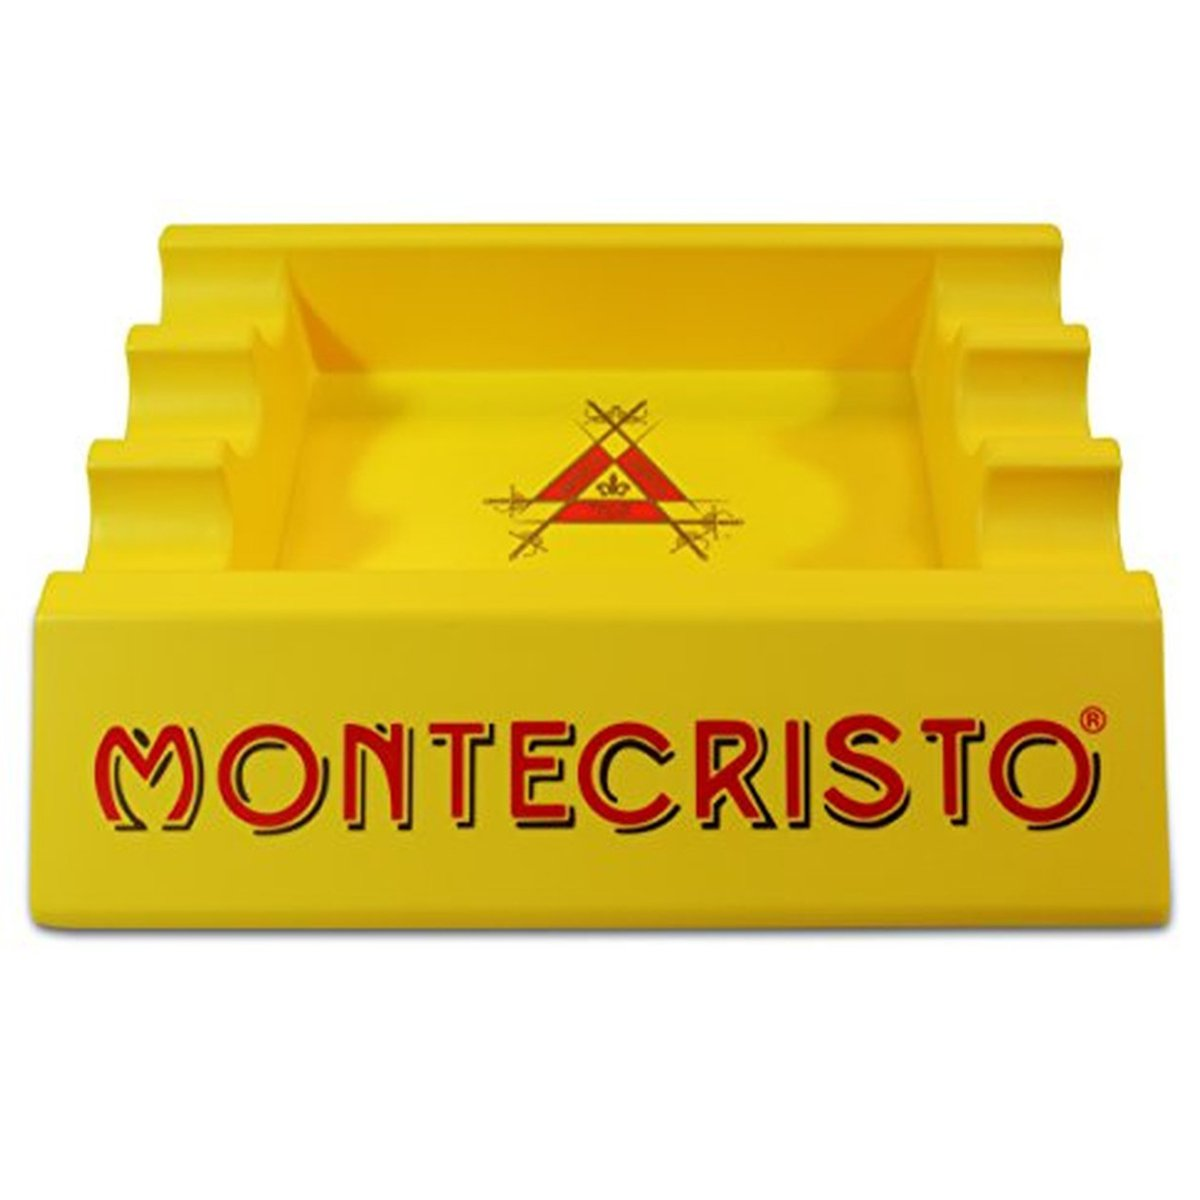 MONTECRISTO Indoor and Outdoor Large Ashtray for Cigars